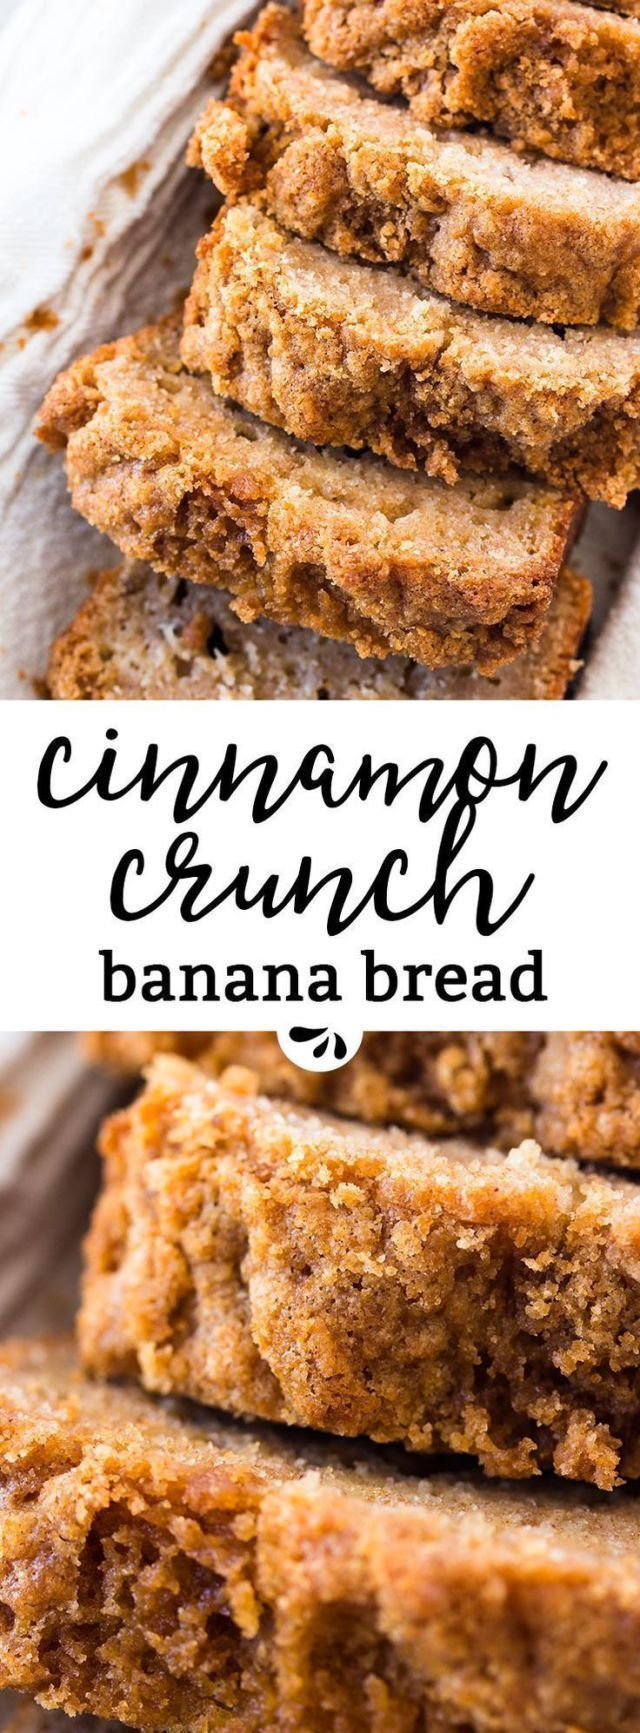 This whole wheat cinnamon crunch banana bread is SO good! Made with whole wheat This whole wheat cinnamon crunch banana bread is SO good! Made with whole wheat